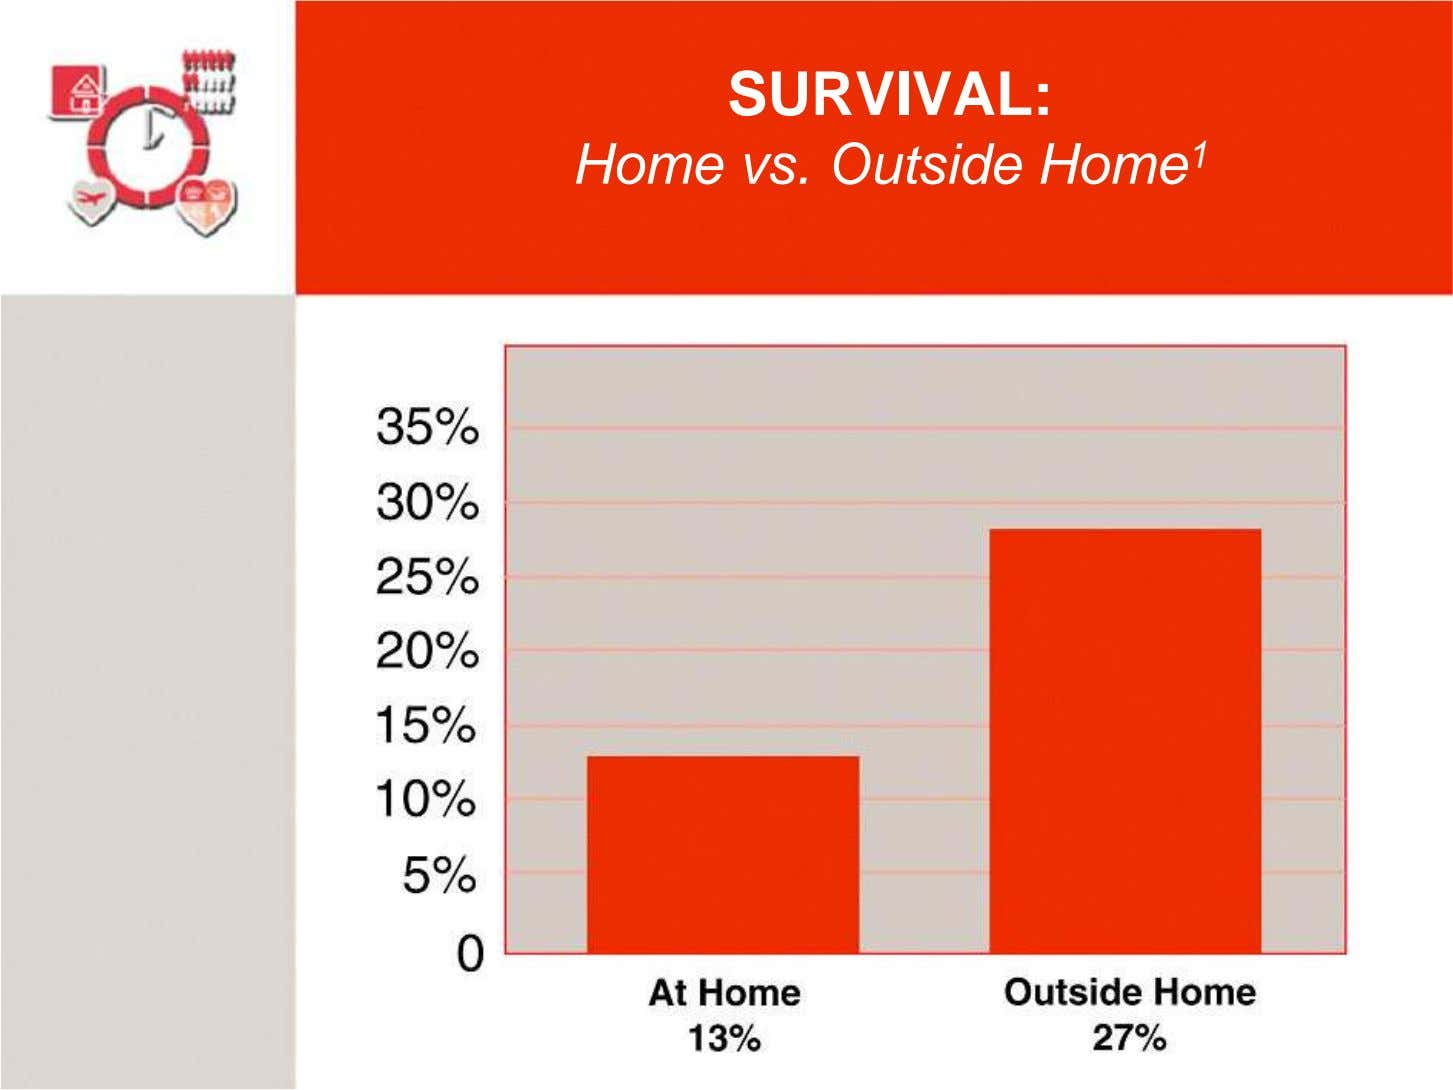 SURVIVAL: Home vs. Outside Home 1